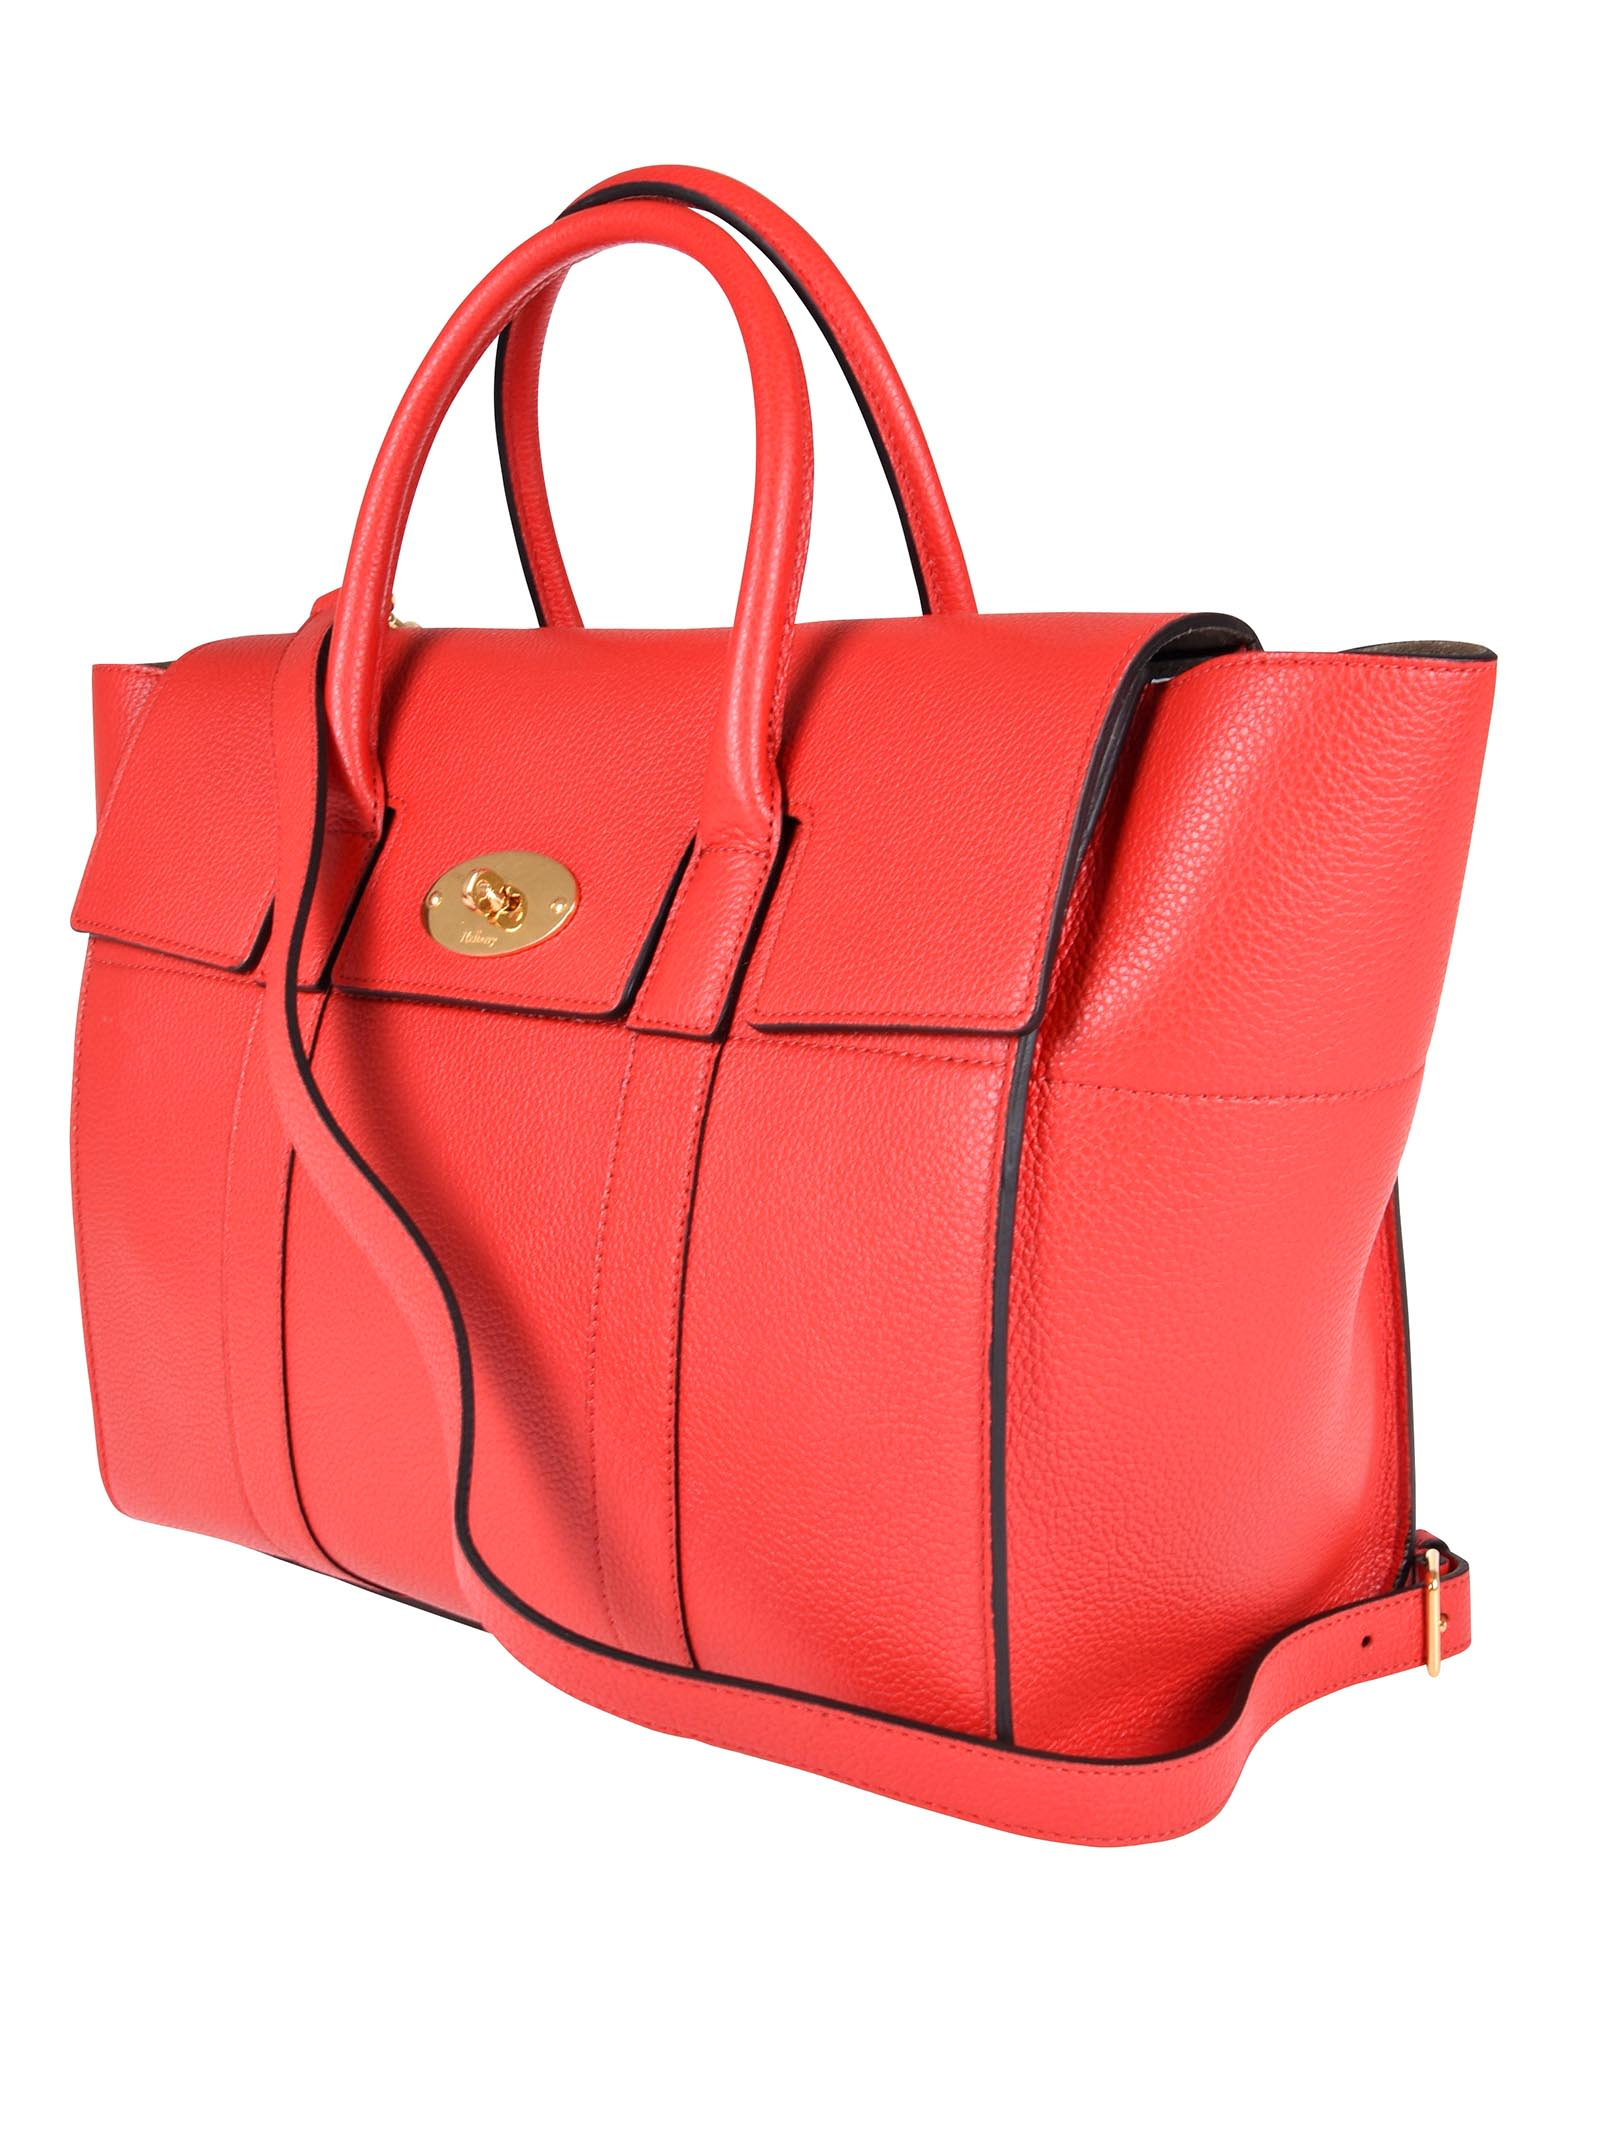 1bd49276c0 ... Mulberry Fold-over Tote - Lruby Red ...